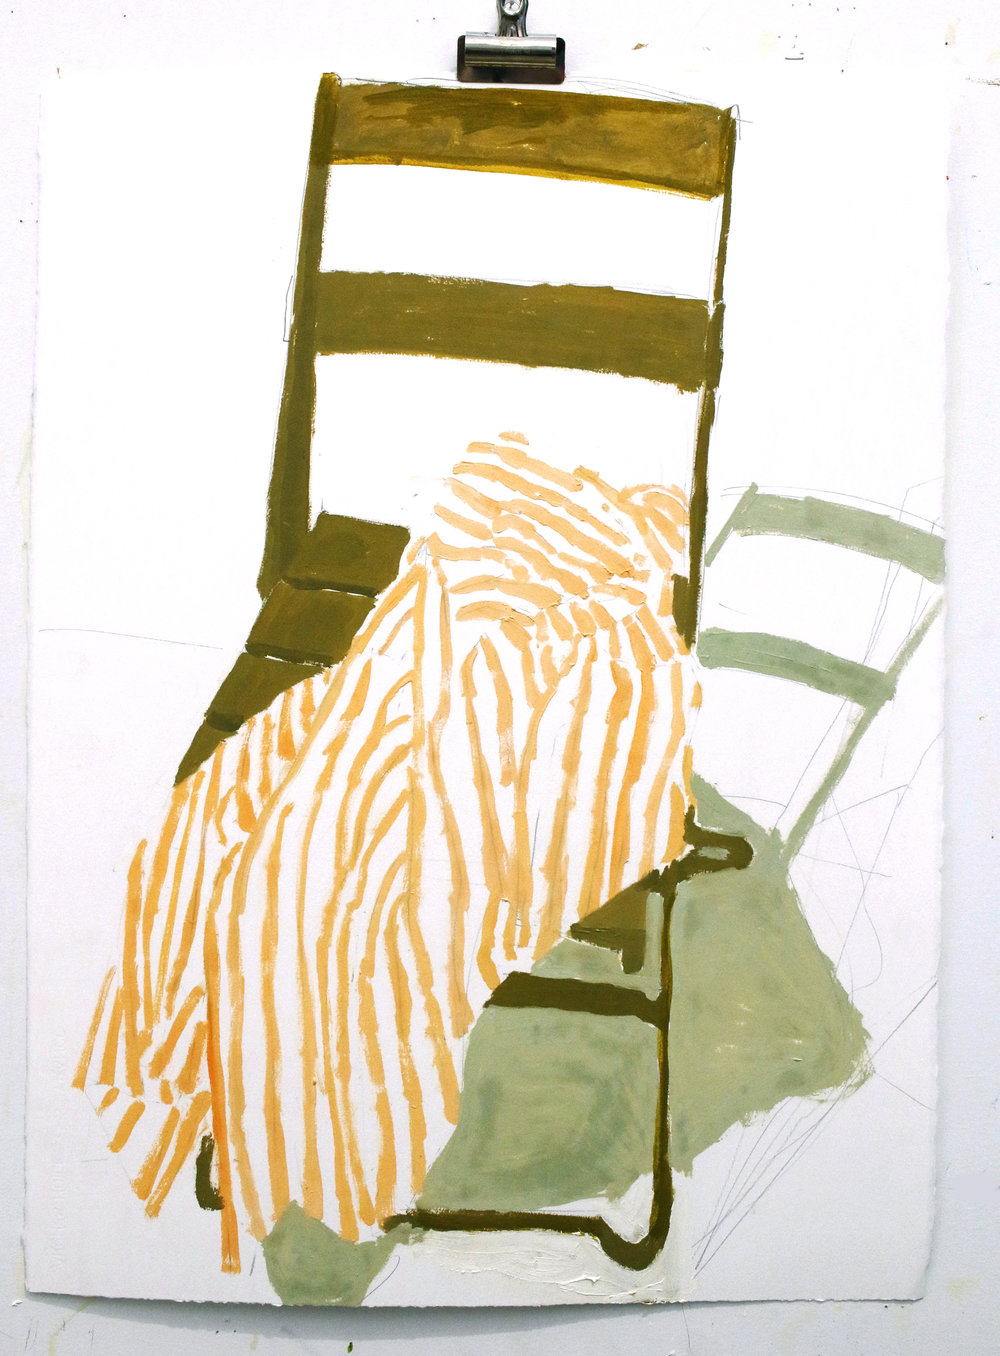 Striped Shirt, Green Chair_Sophie Treppendahl.jpg